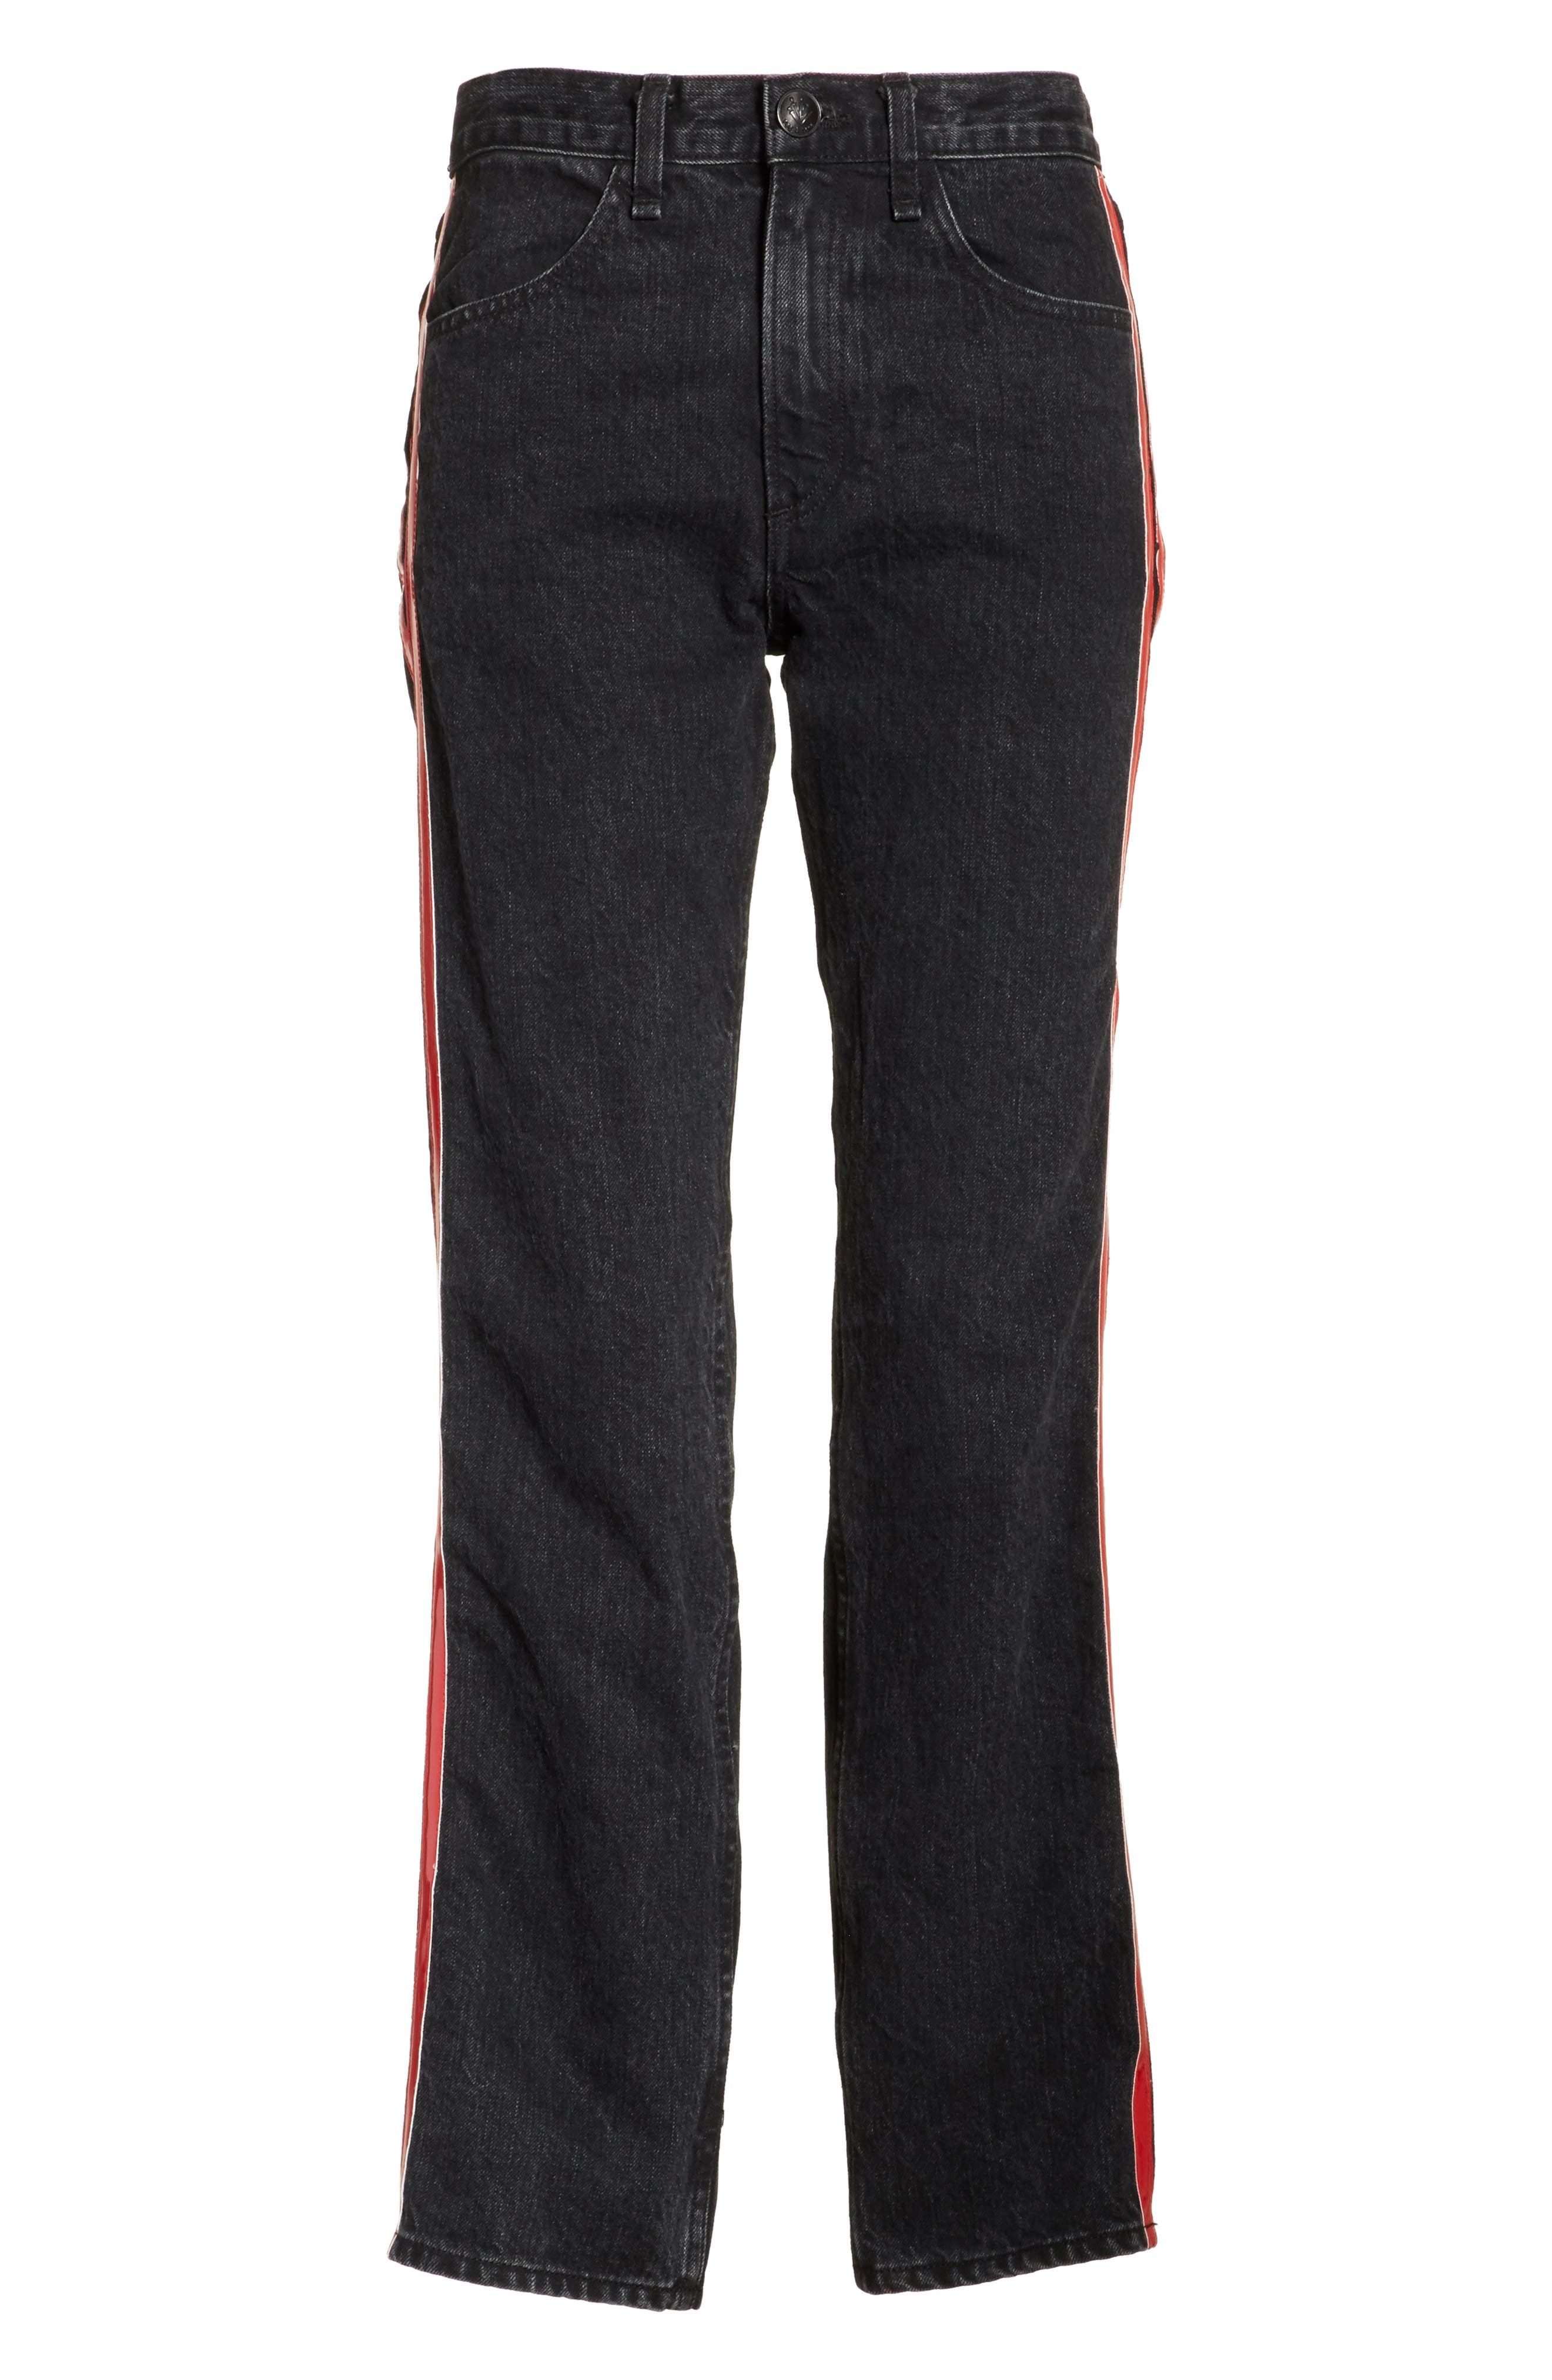 High Waist Straight Leg Jeans,                             Alternate thumbnail 6, color,                             Washed Black